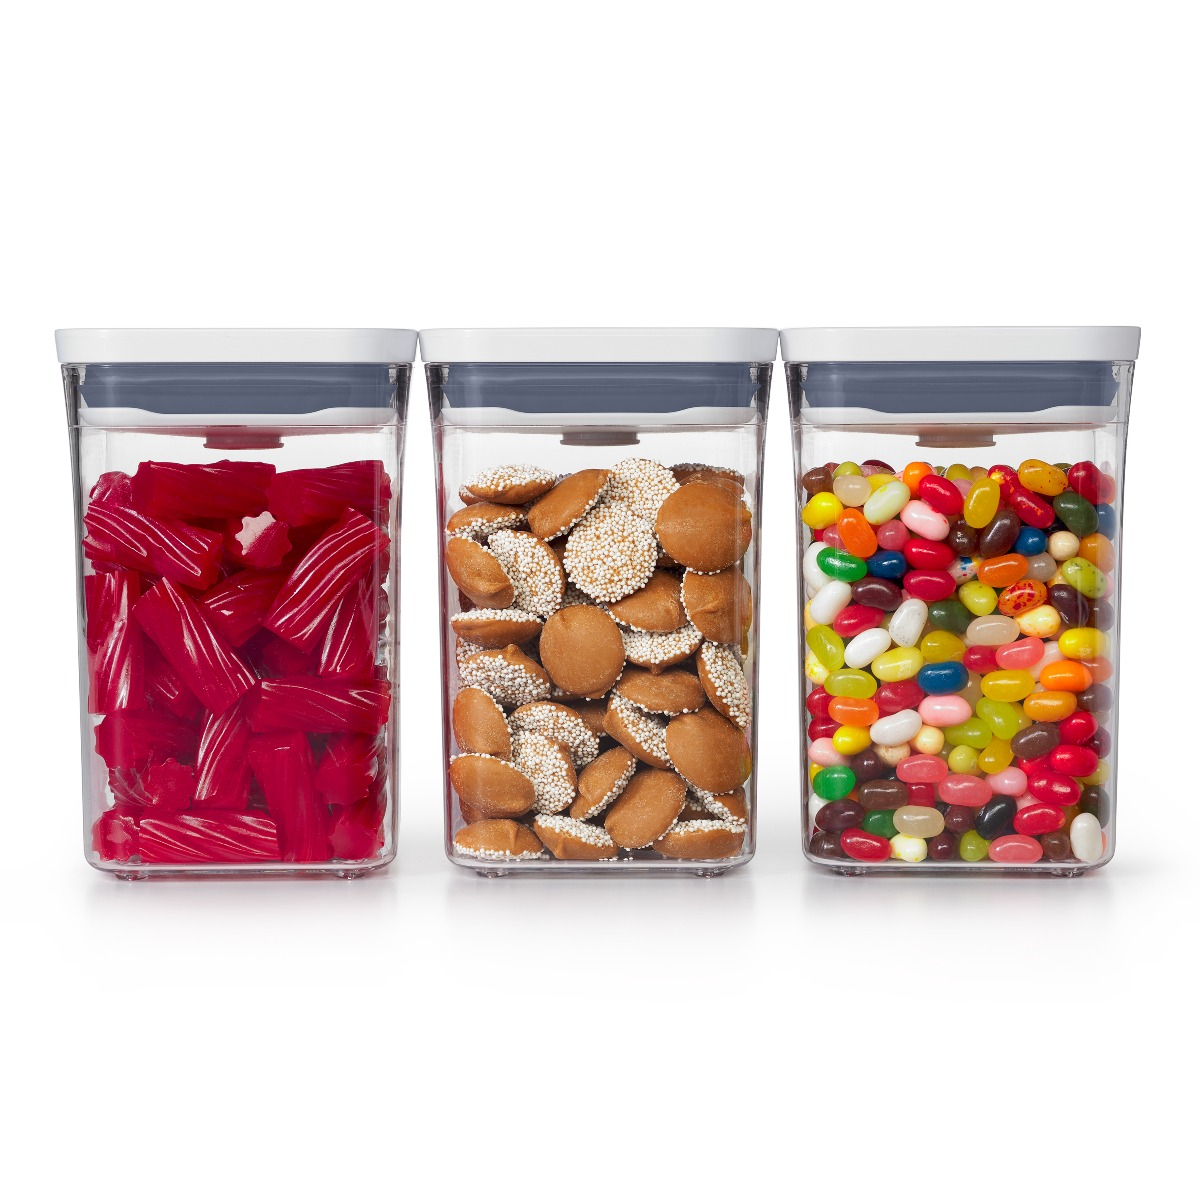 OXO 3-Piece POP Container Value Set